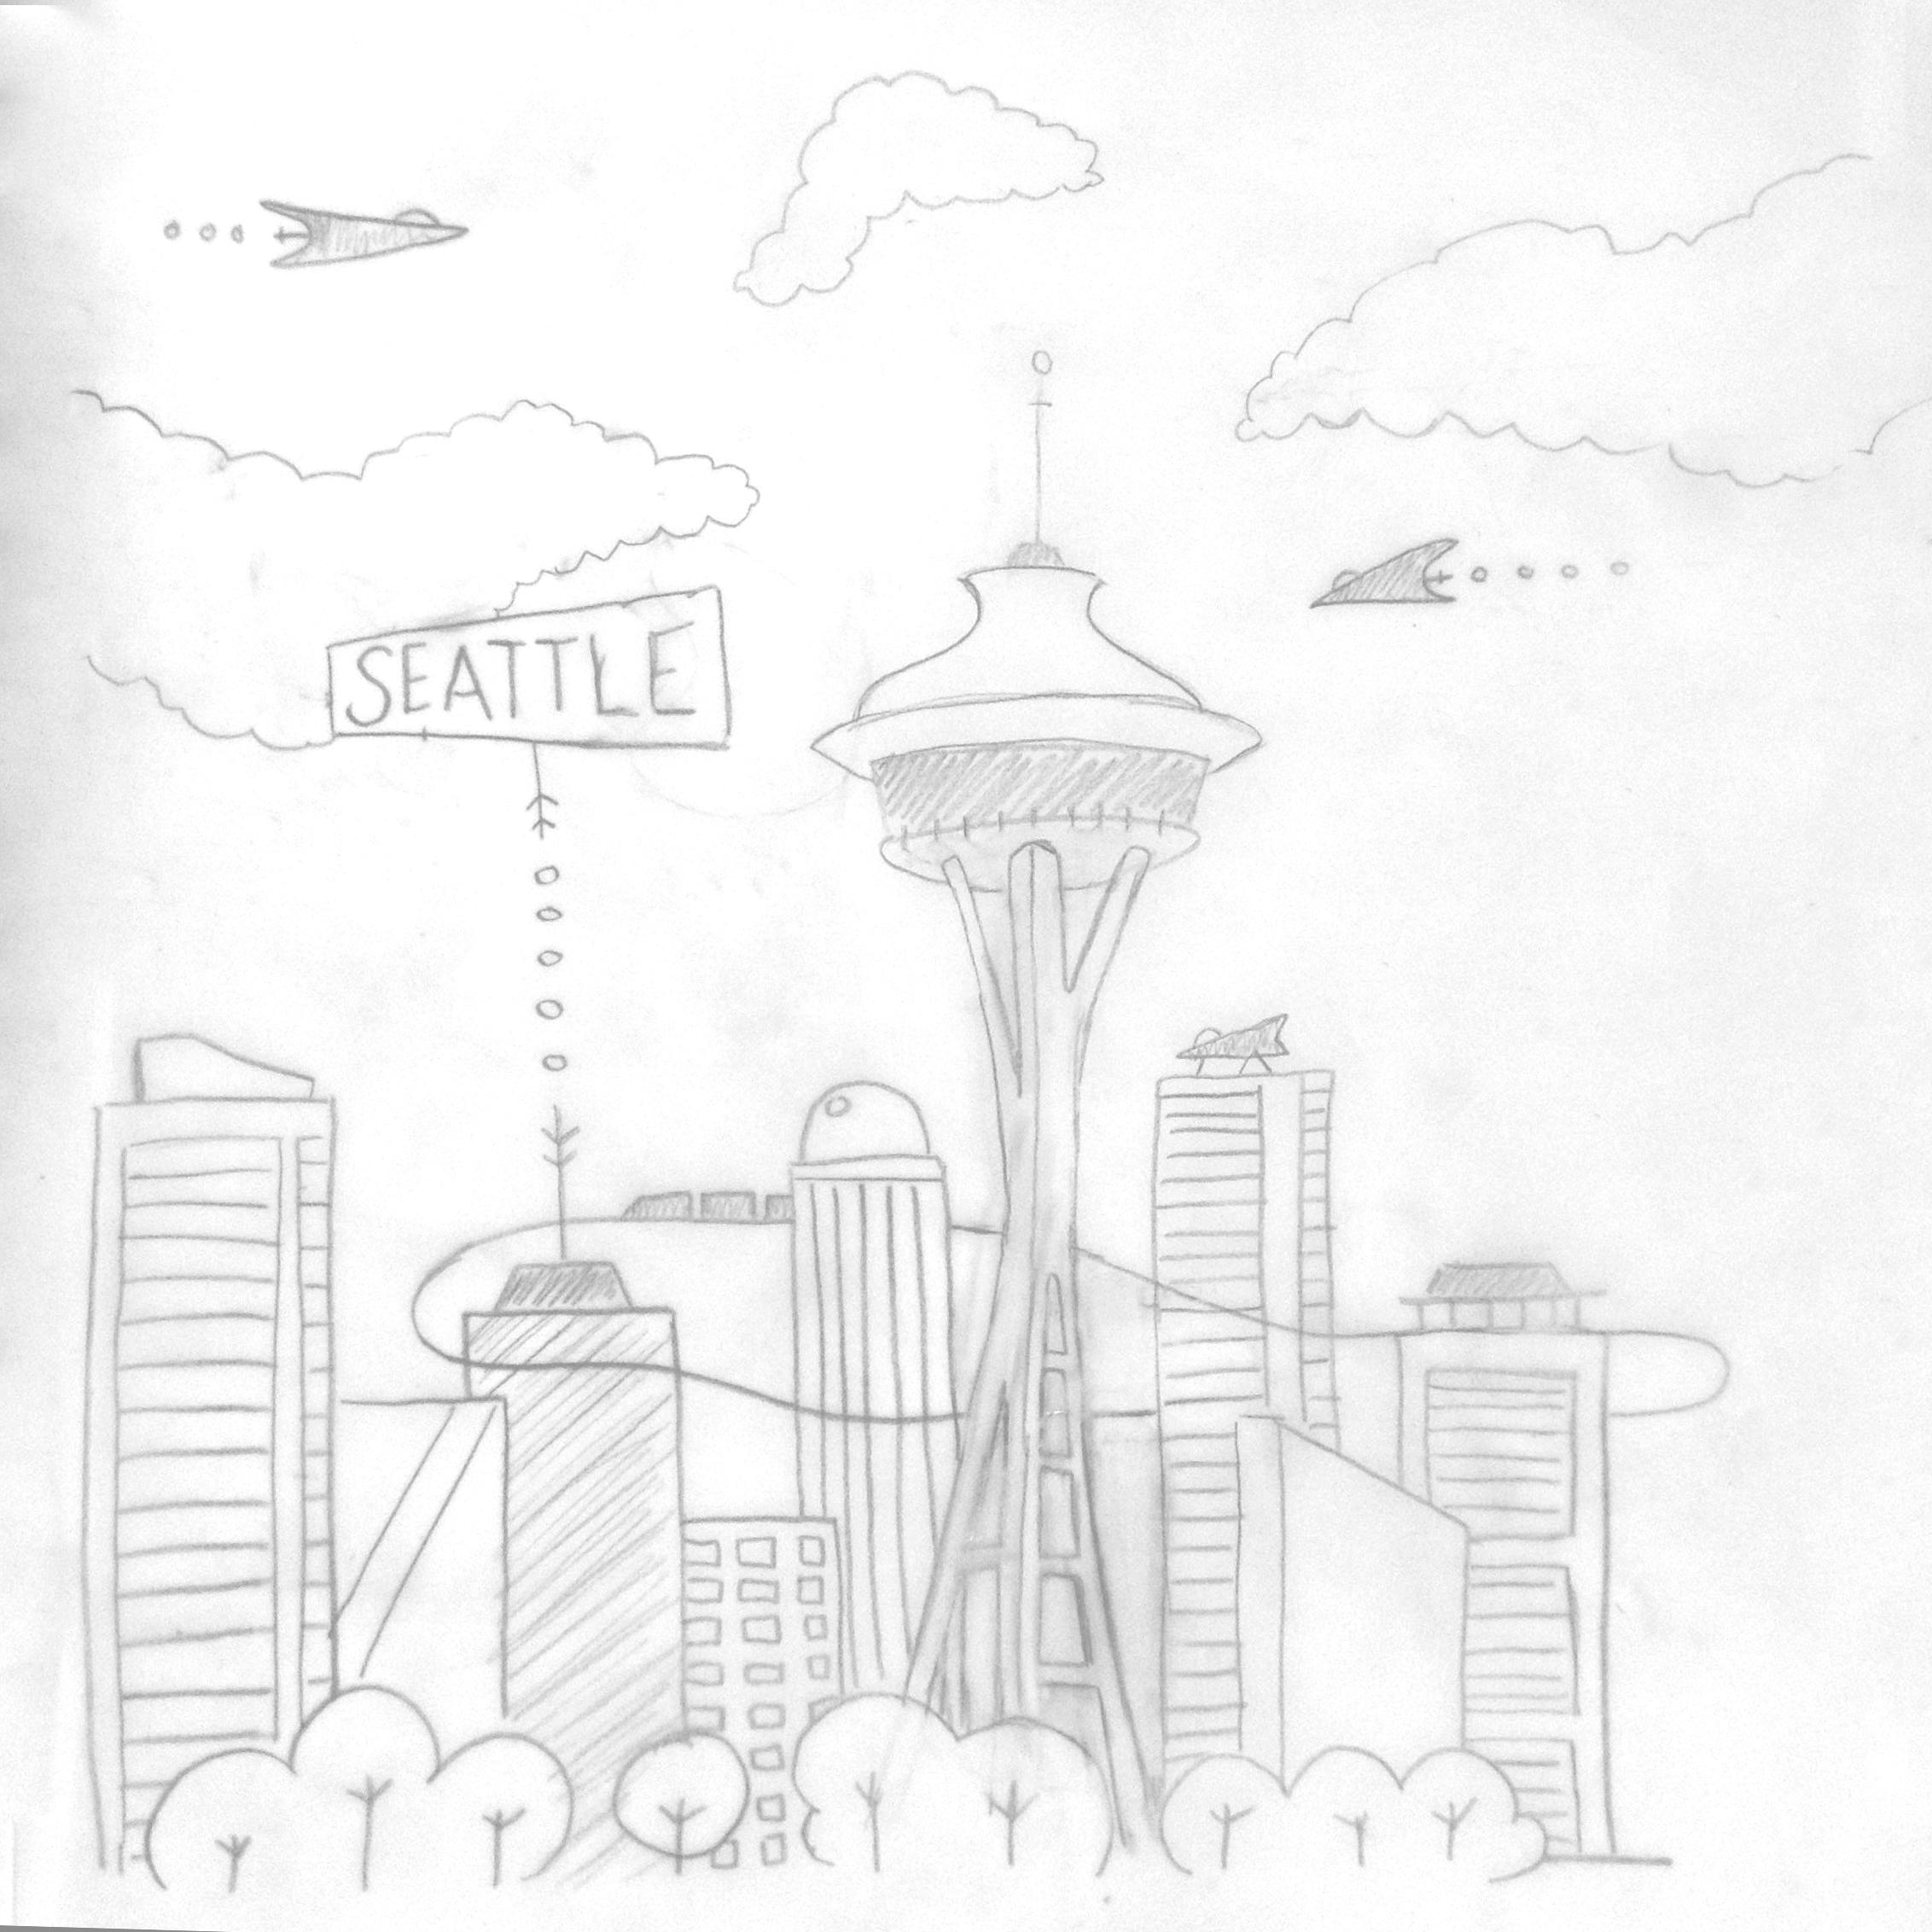 Seattle Postcard - image 1 - student project